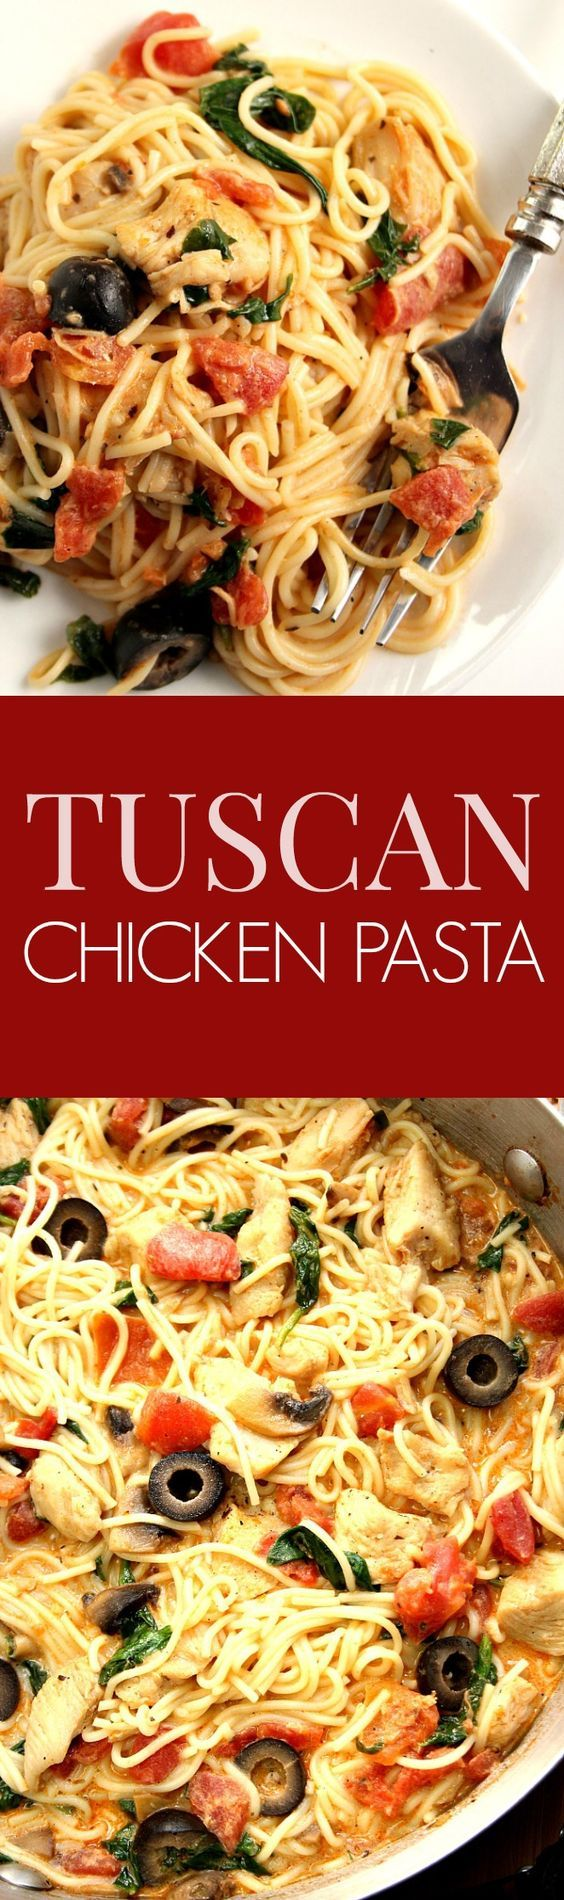 Tuscan Chicken Pasta Recipe Crunchy Creamy Sweet Chicken Pasta Dishes Italian Chicken Pasta Recipes Pasta Recipes